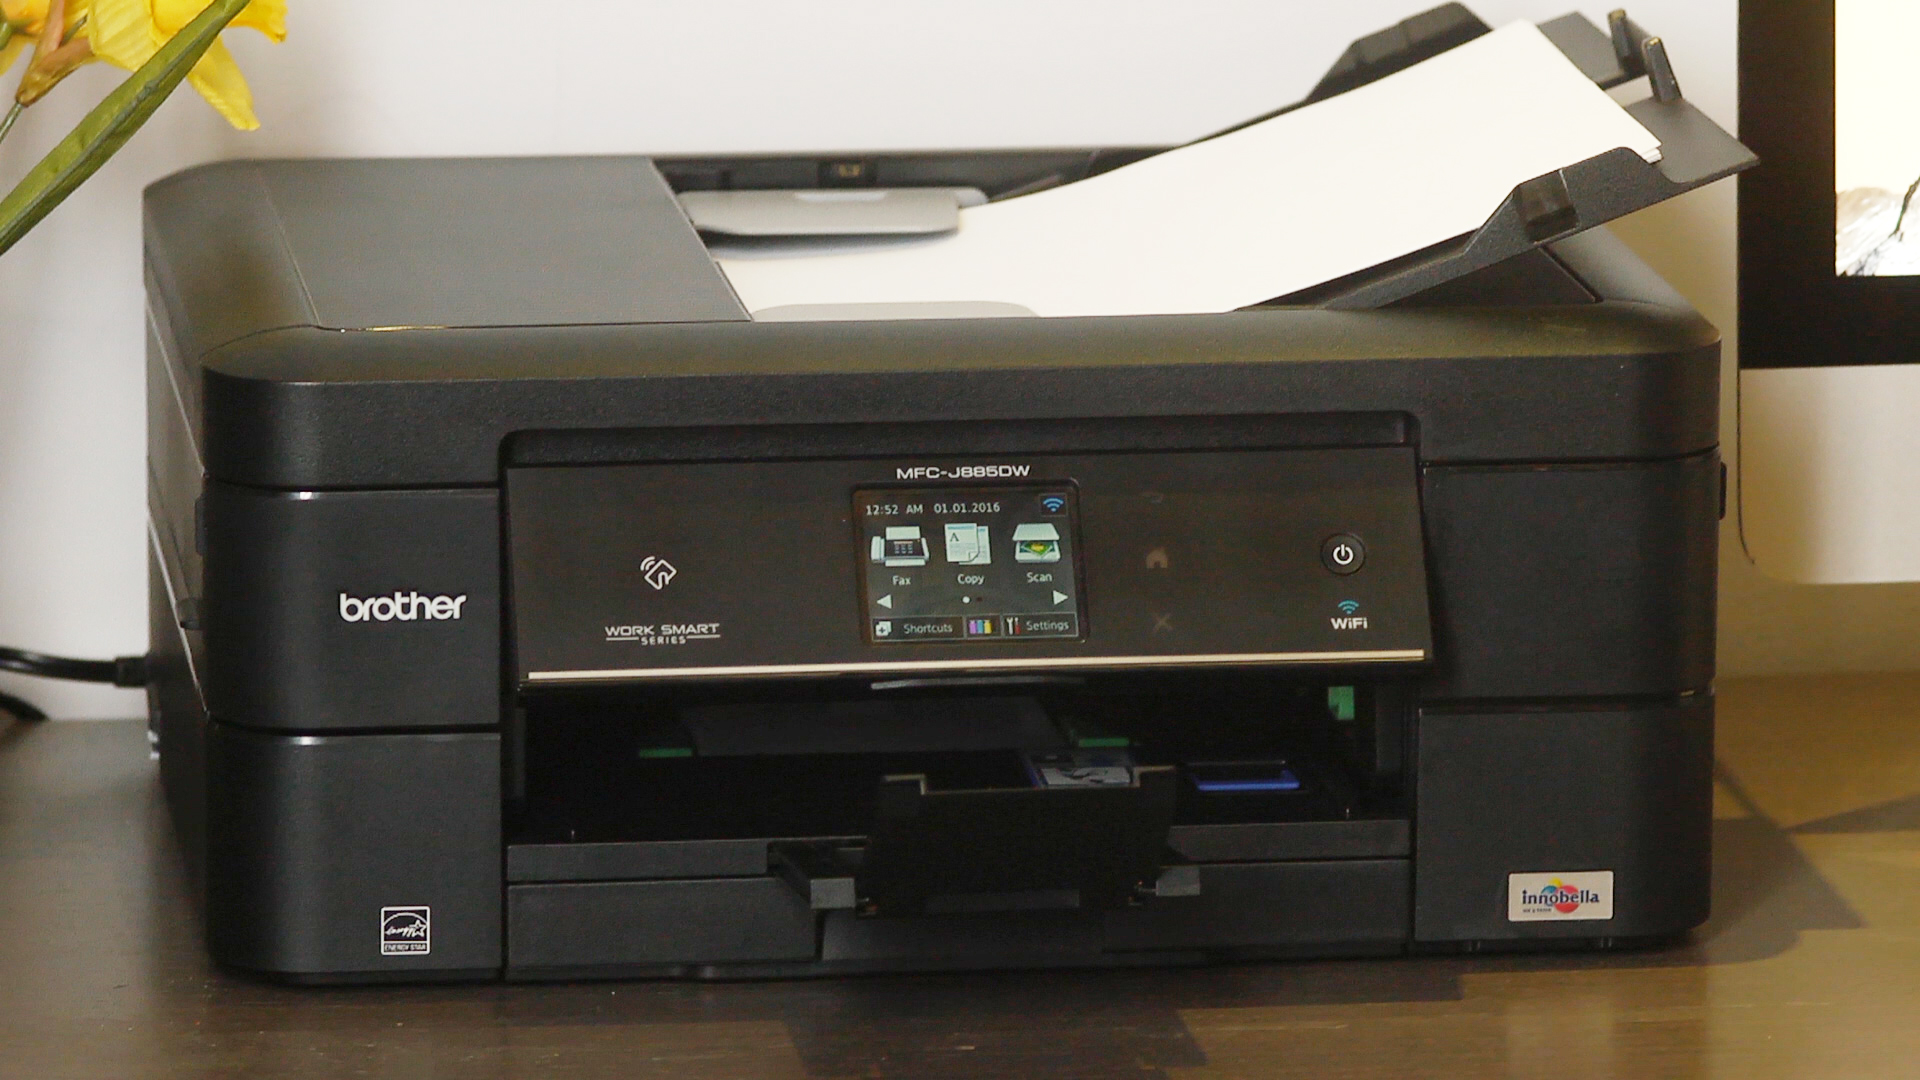 Video: Stymied by slow print speeds, this Brother printer can't keep up with the competition